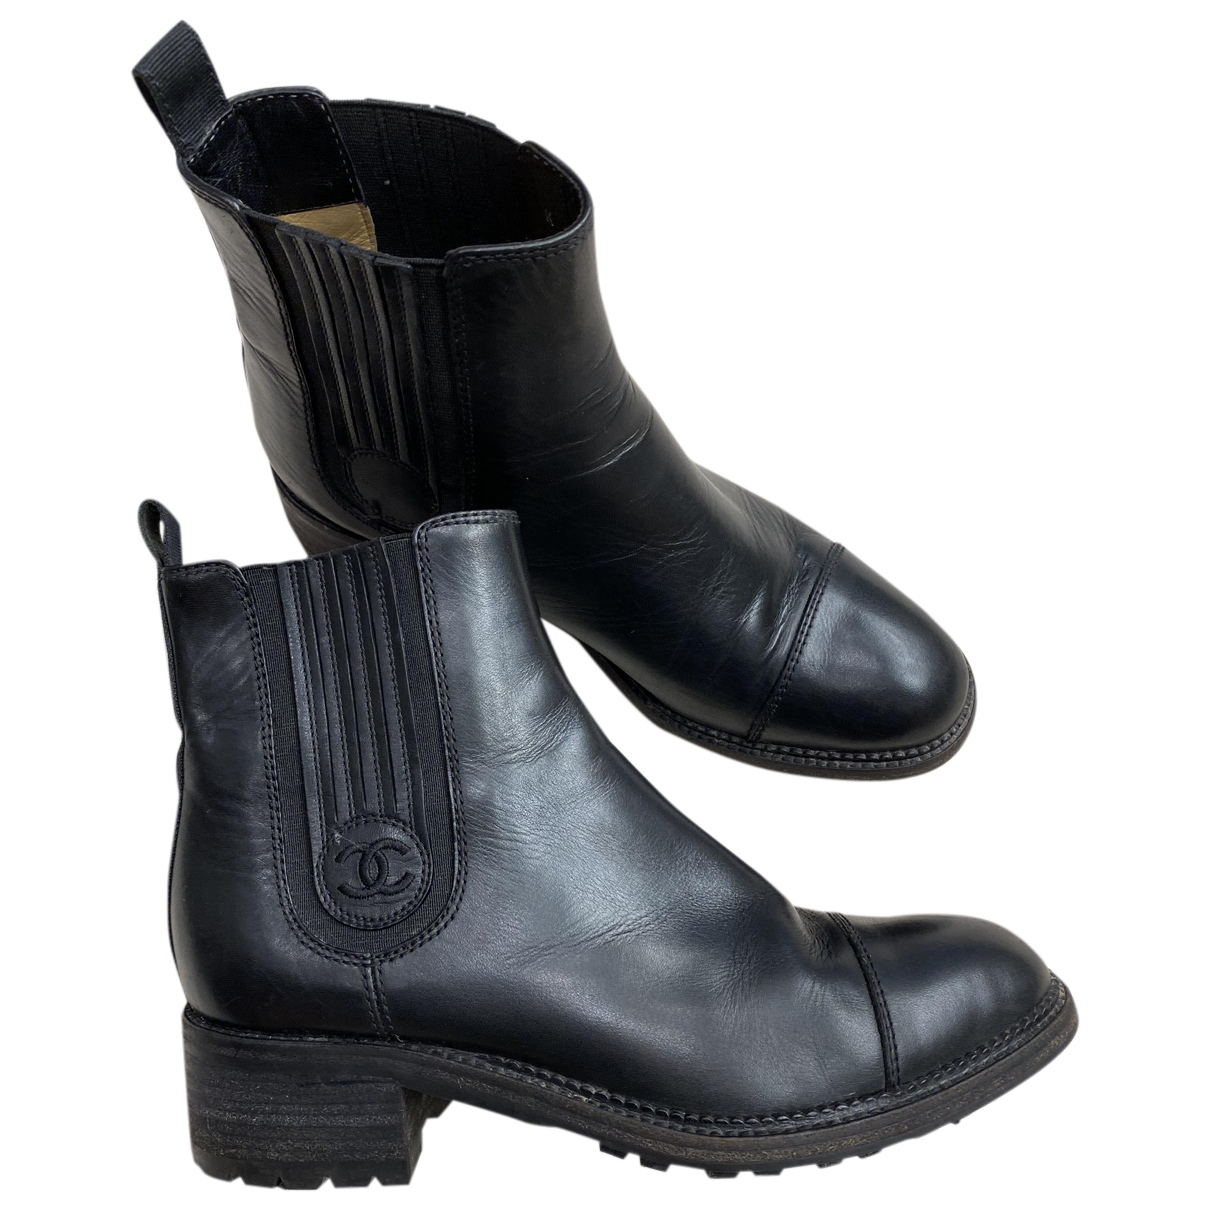 Chanel N Black Leather Ankle boots for Women 38 EU